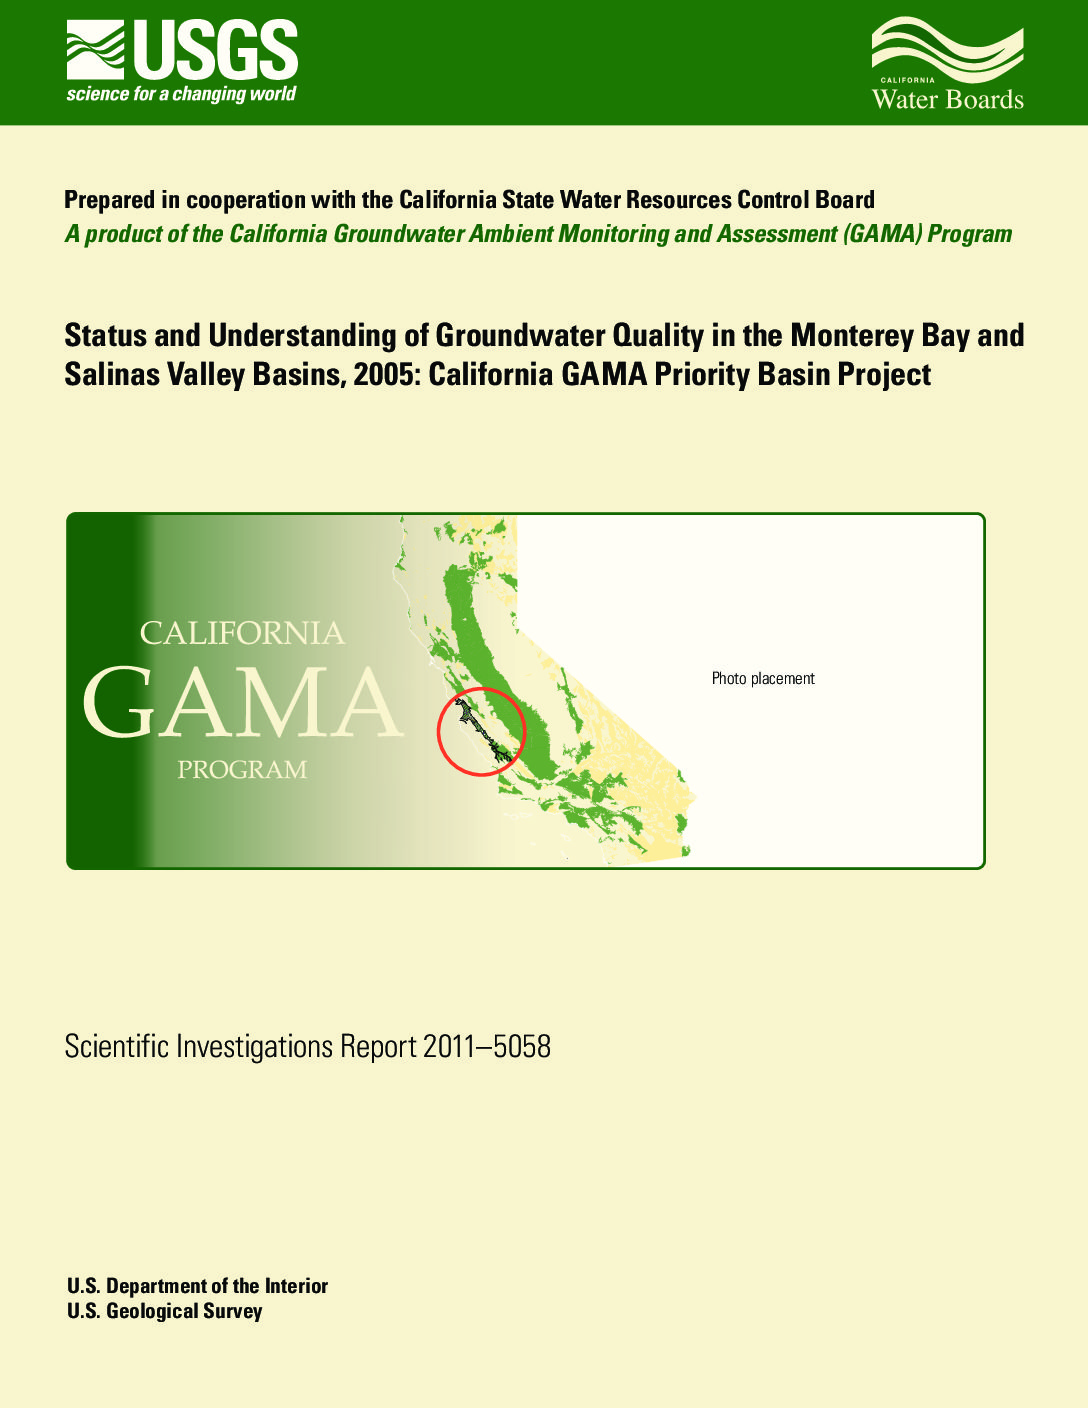 Status and Understanding of Groundwater Quality in the Monterey Bay and Salinas Valley Basins, 2005: California GAMA Priority Basin Project